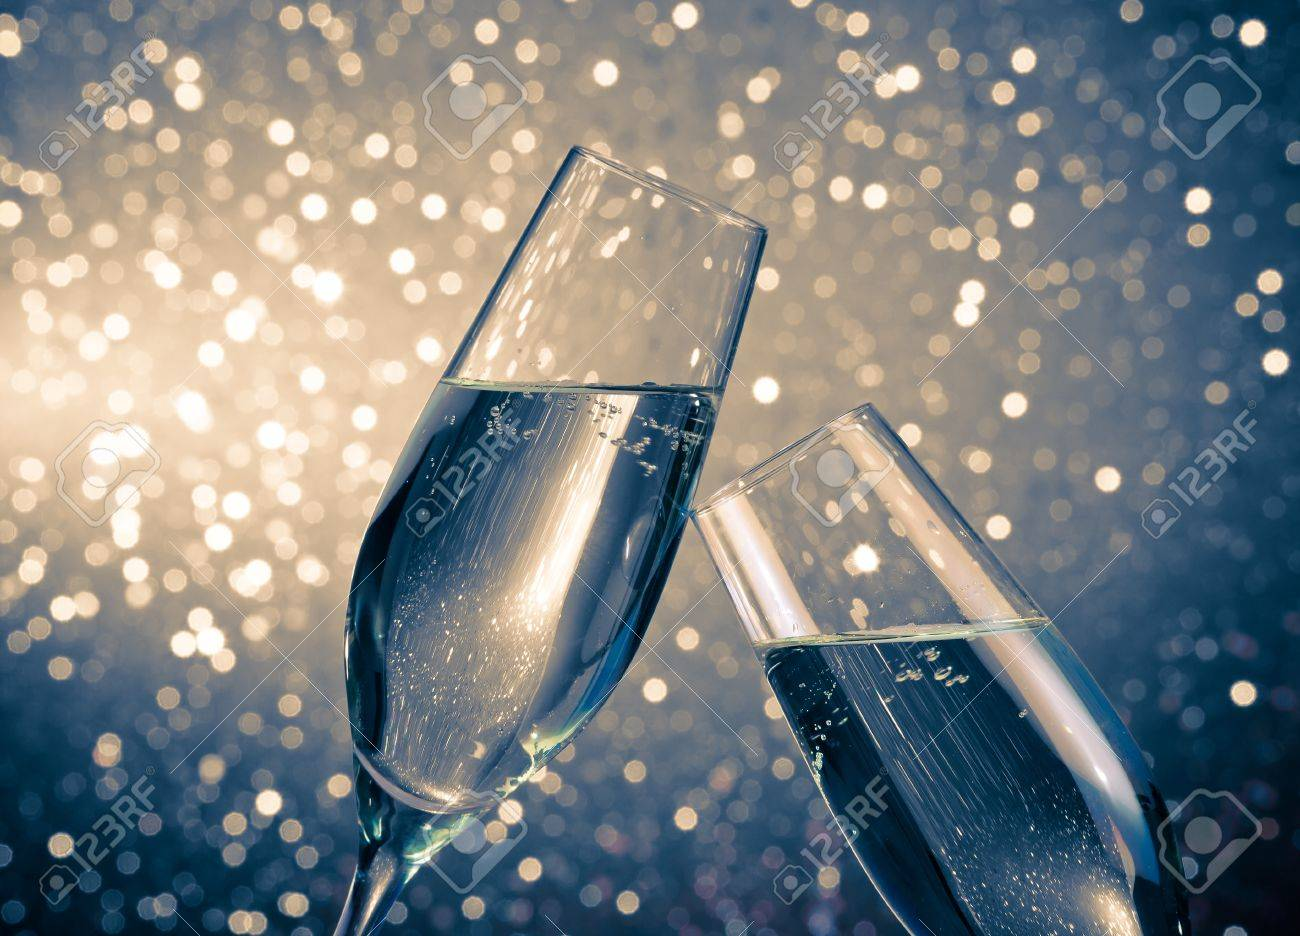 a pair of champagne flutes with golden bubbles make cheers on blue light bokeh background with space for text - 24842475